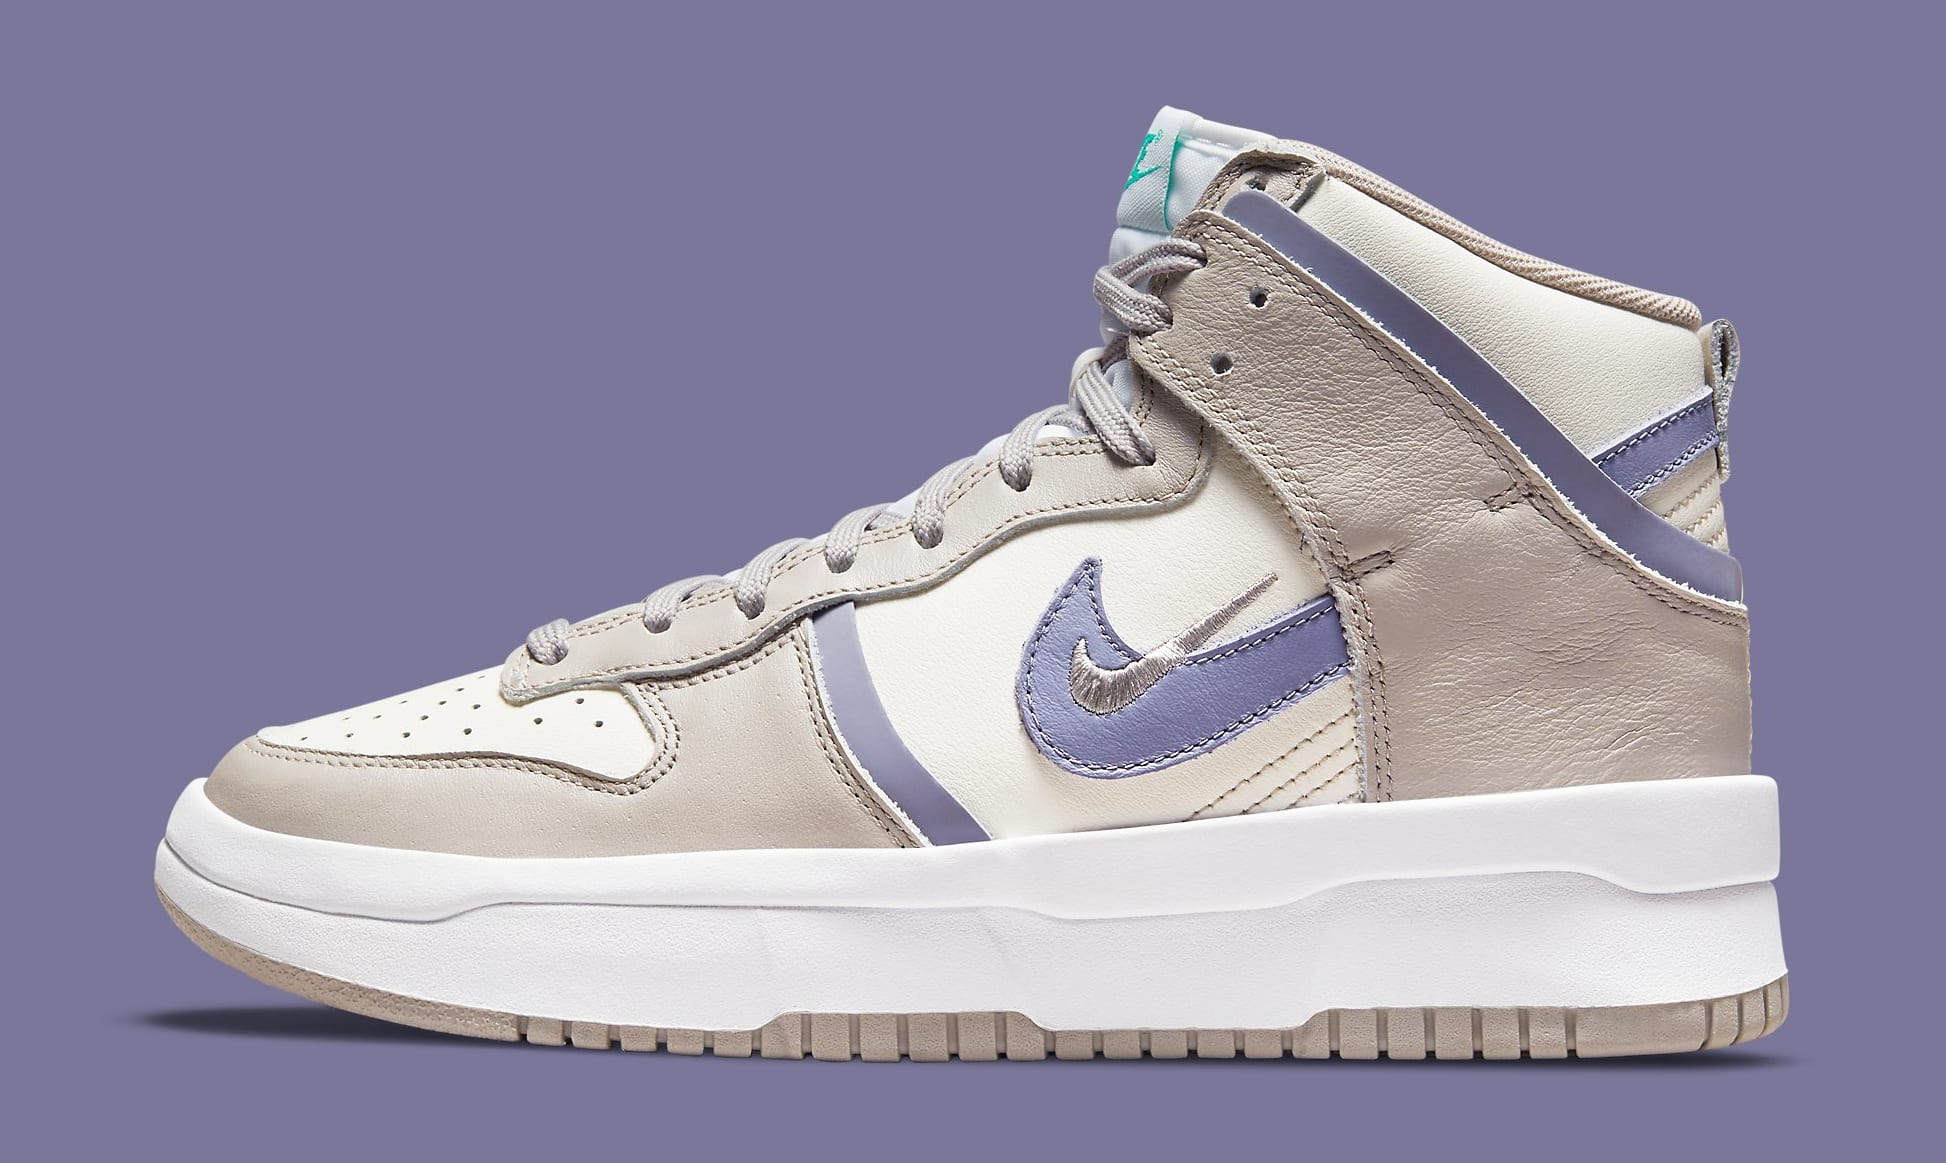 Nike Dunk High Up 'Iron Purple' DH3718-101 Lateral